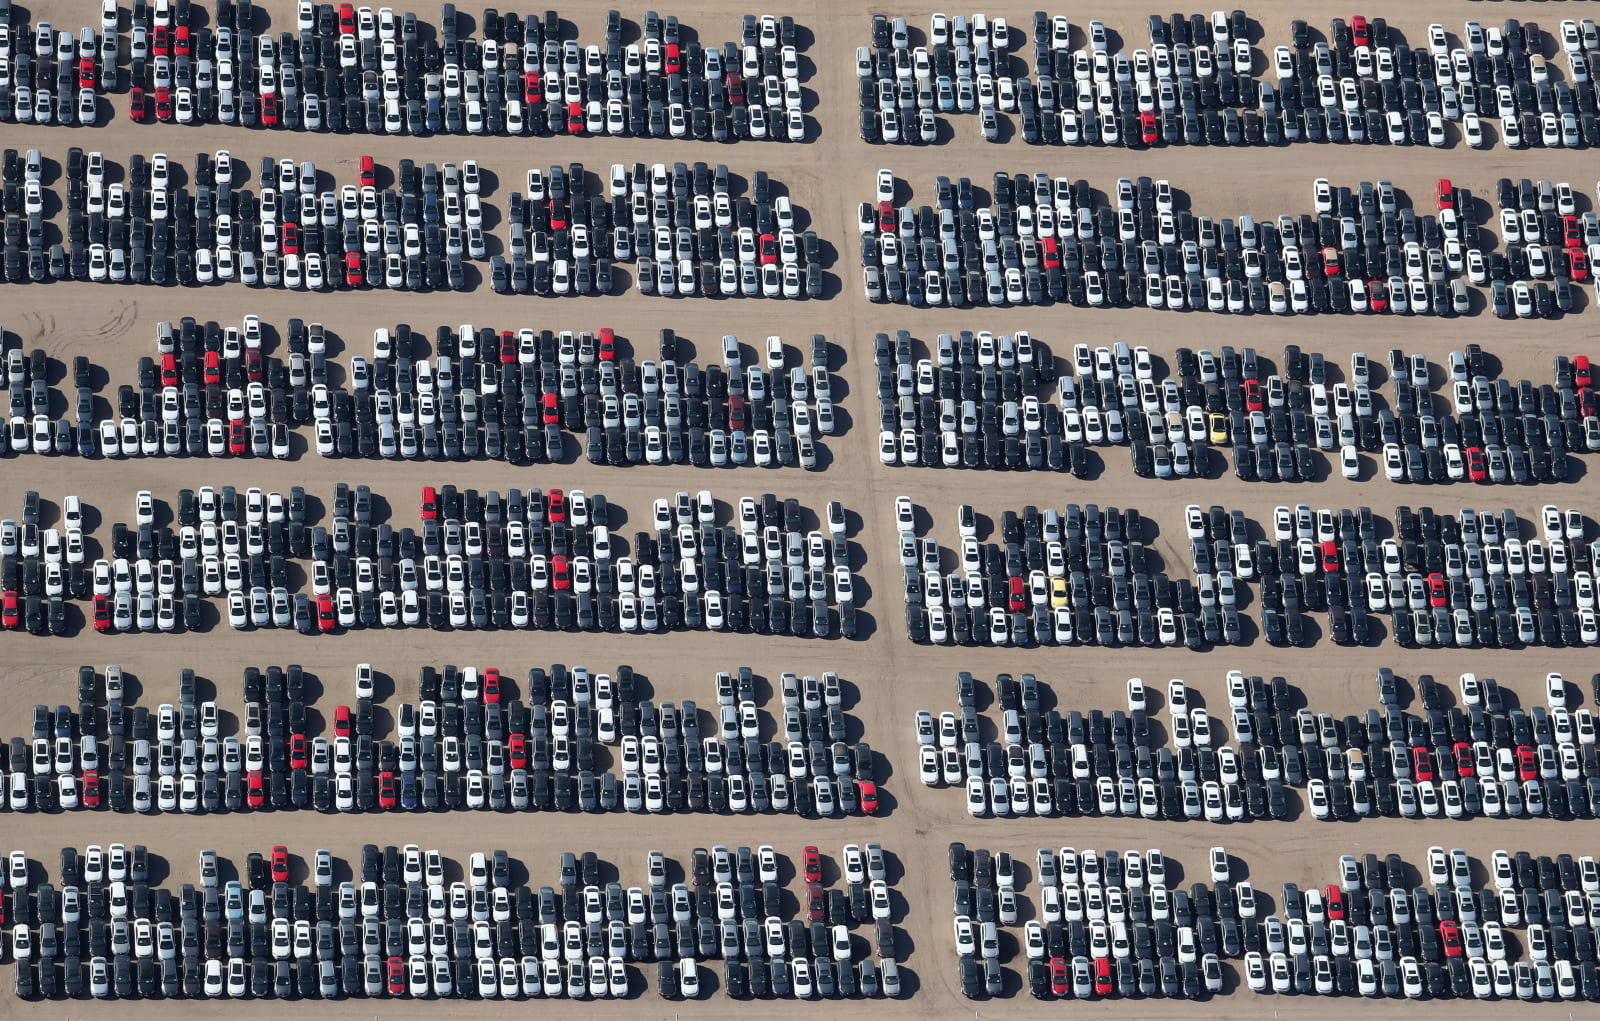 Volkswagen and Audi diesel cars at rest in the desert near Victorville, California.